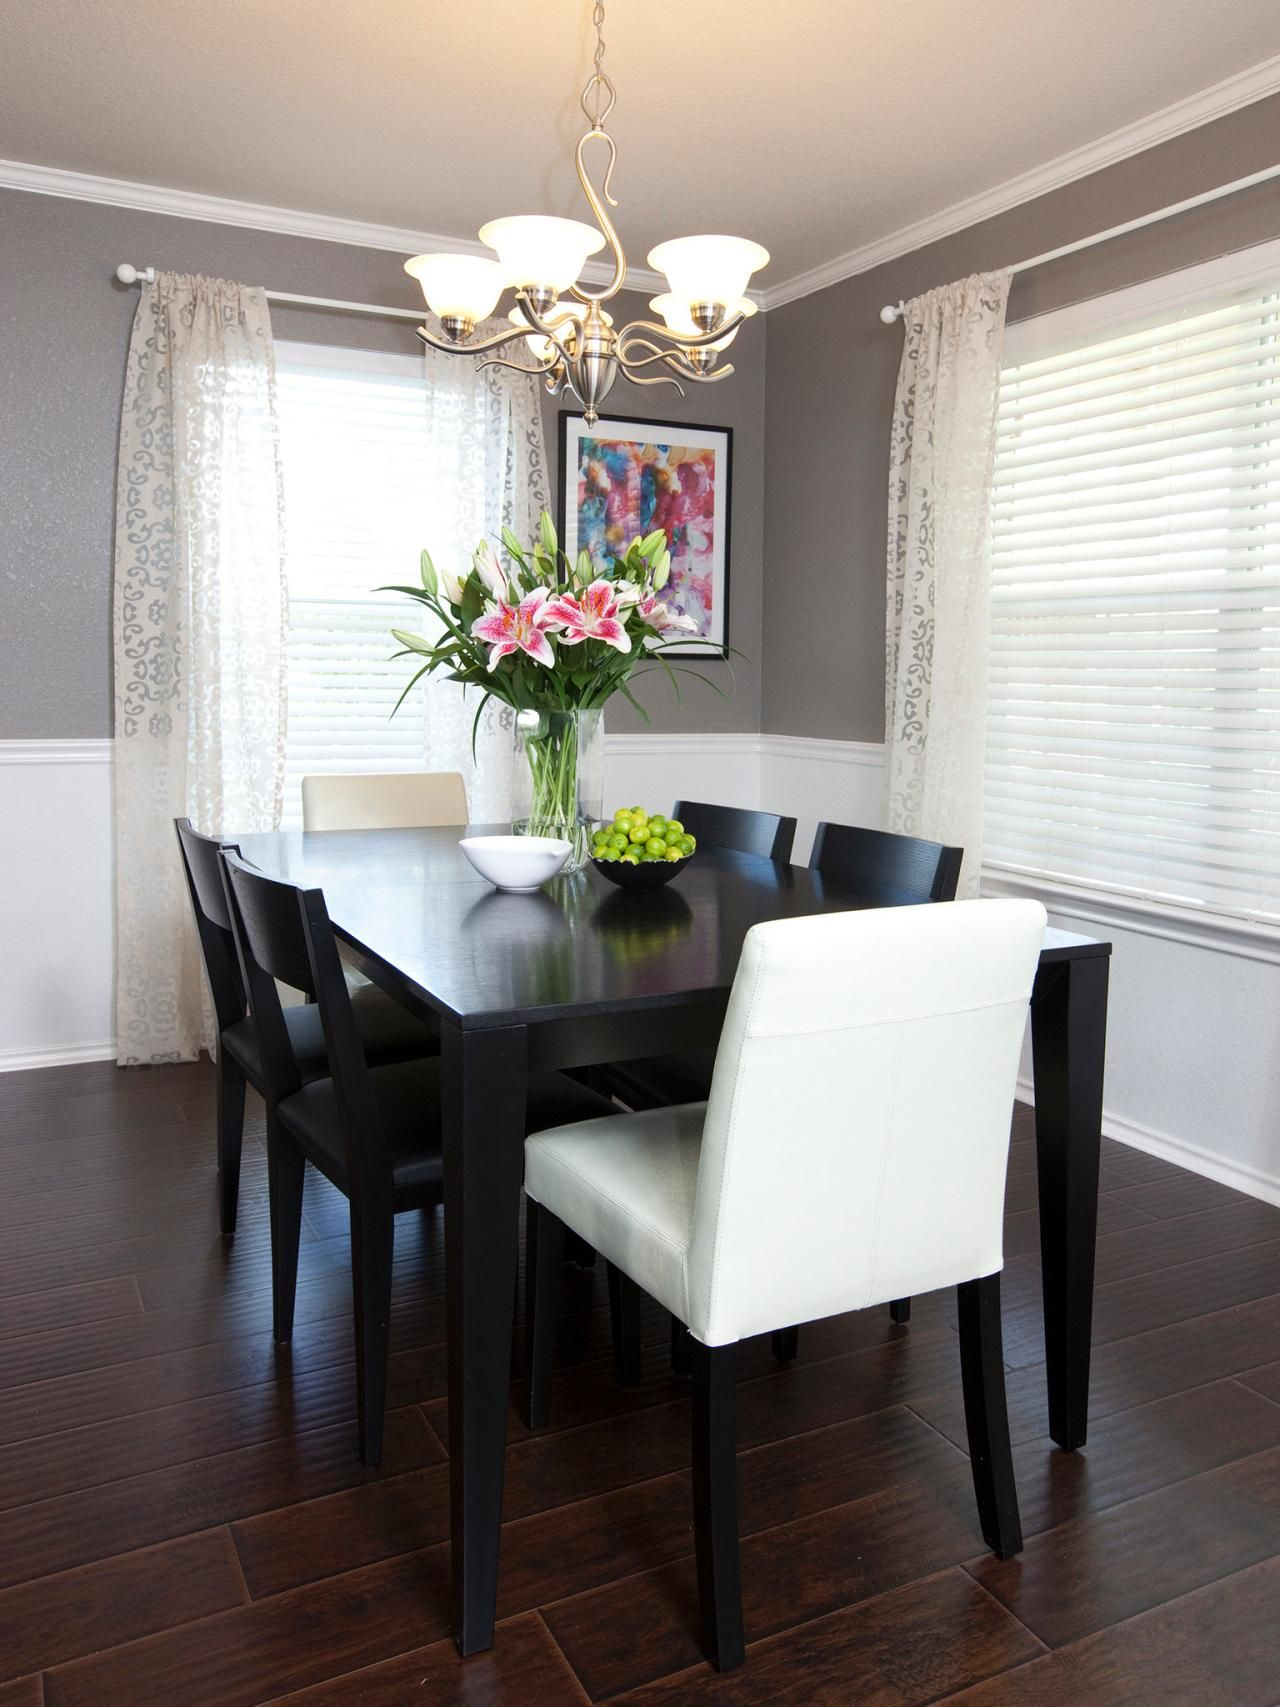 chair rail molding divides two toned walls in this neutral dining